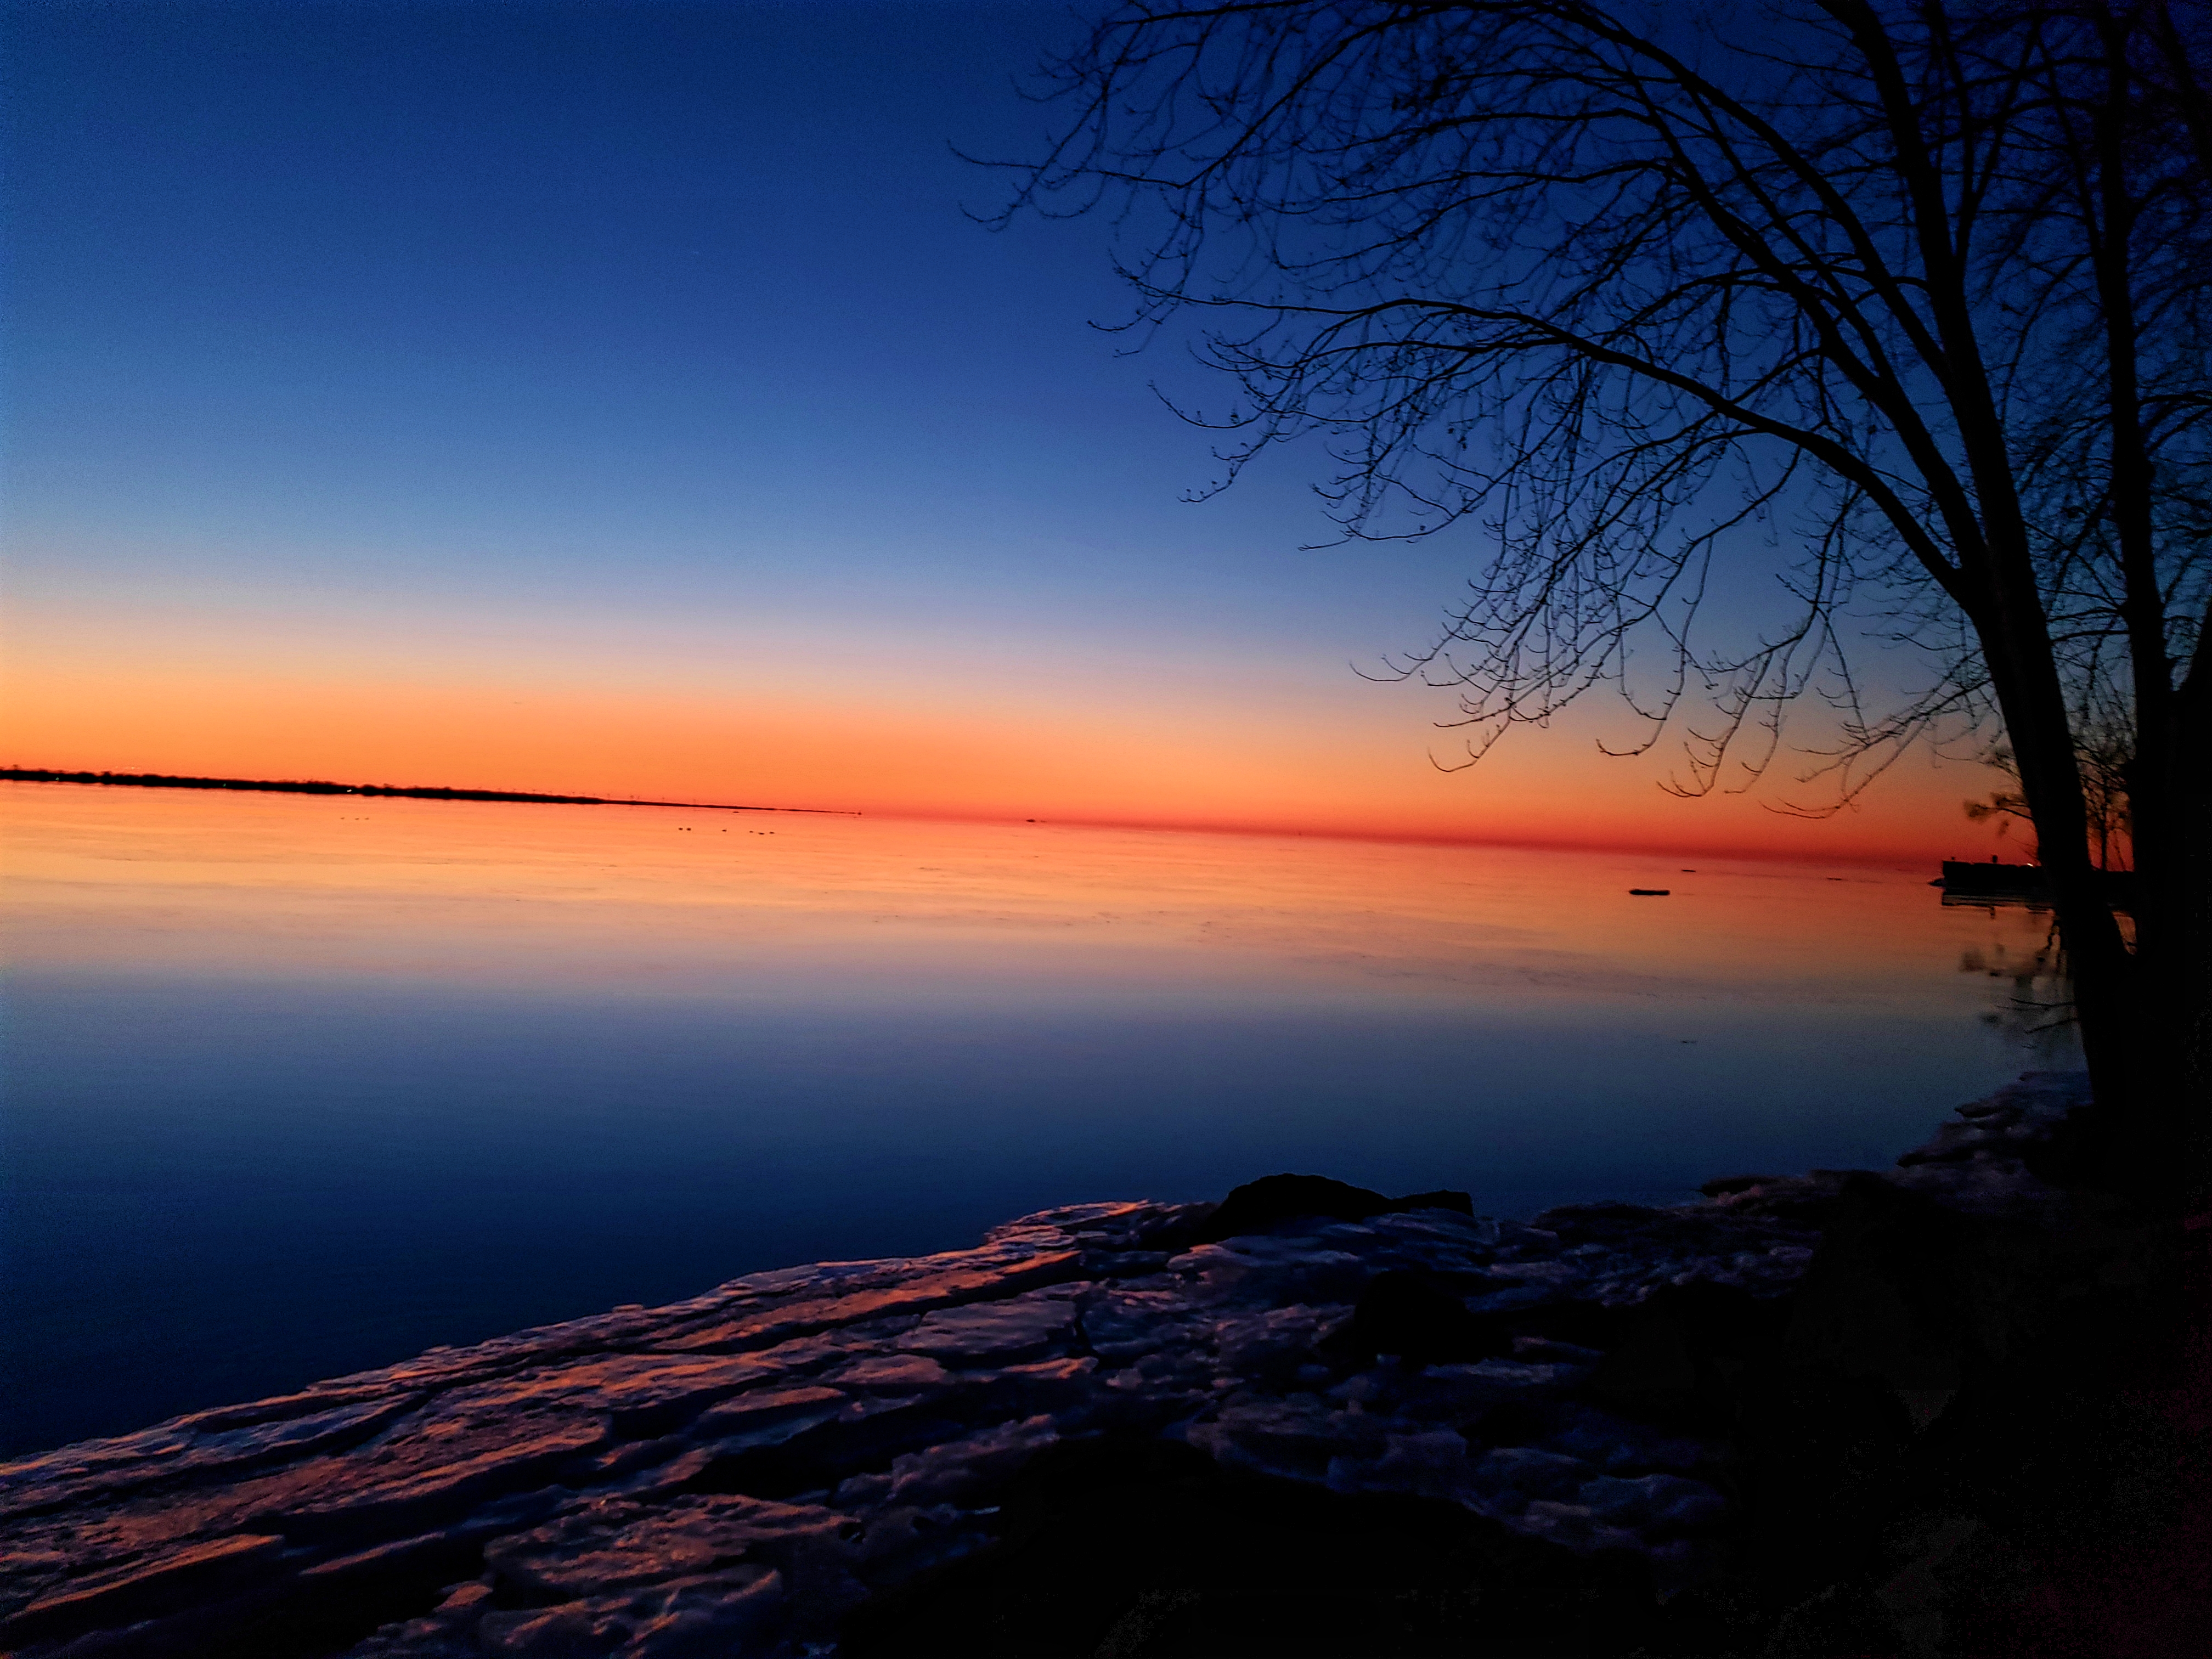 In the shadows of  the twilight sky are an icy shore, on the right in the photo is a silhouette of a tree